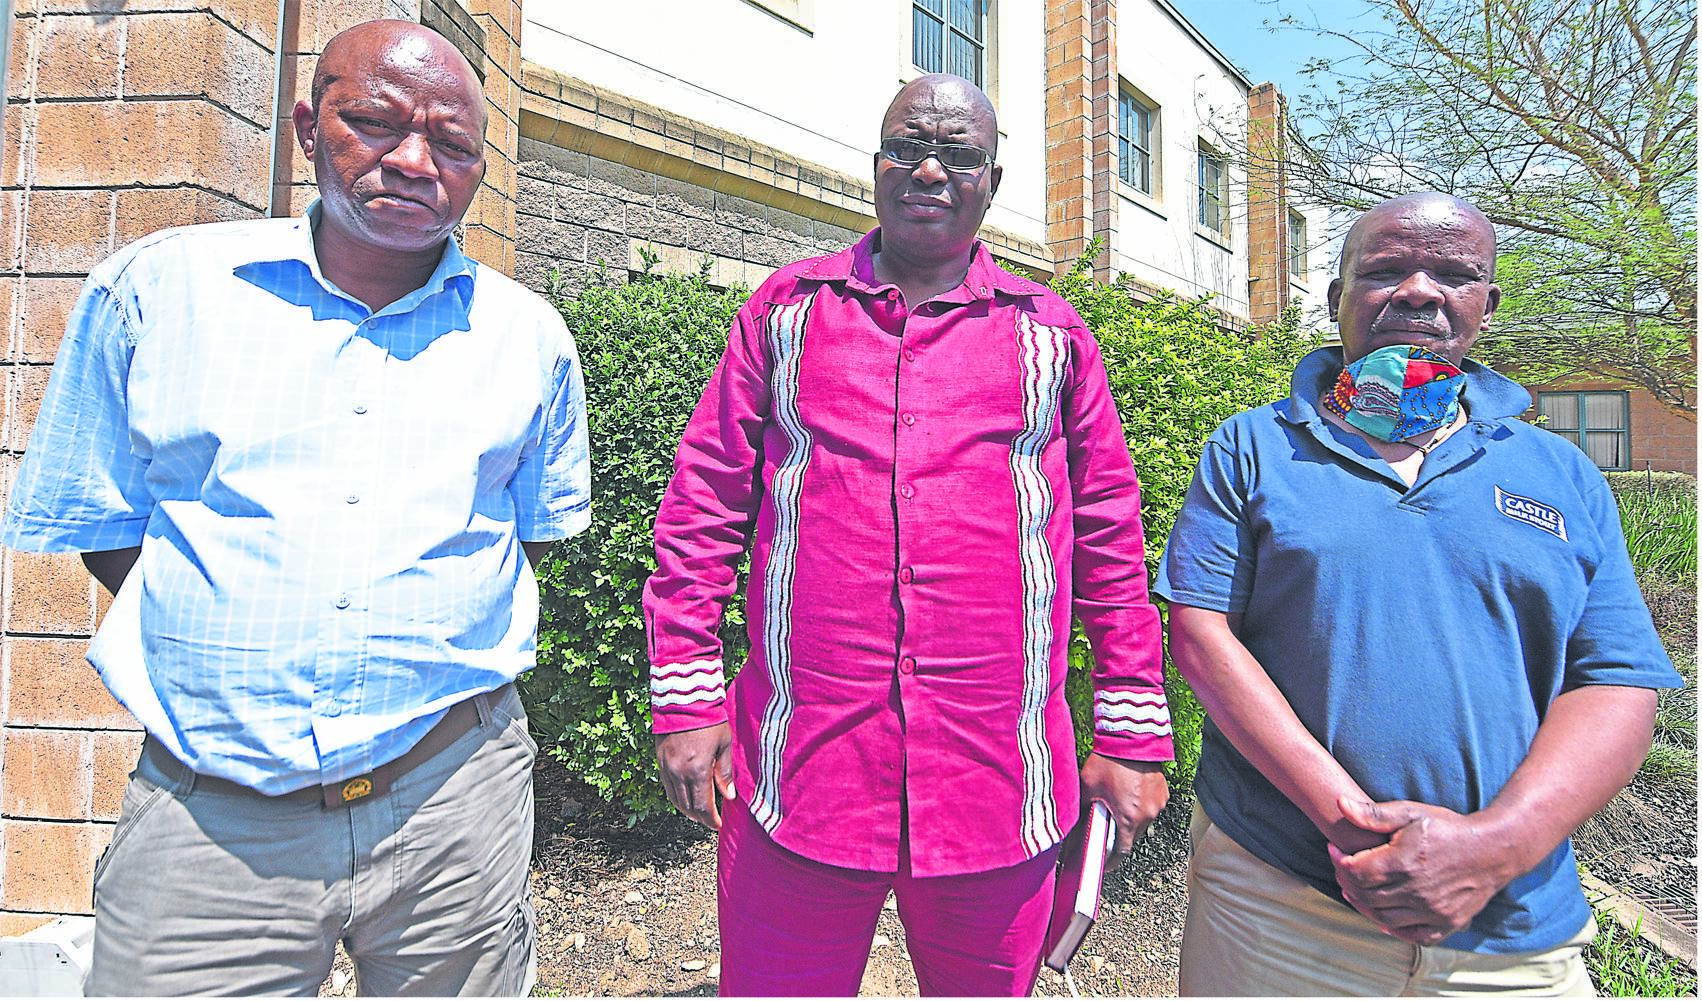 War vets (from left) Malusi Hlatshwayo, Thamsanqa Christopher Ngubu and Thamsanqa Mngadi have refused to move out of the flats that were invaded at the Aloe Ridge social housing complex in Westgate, Pietermaritzburg.